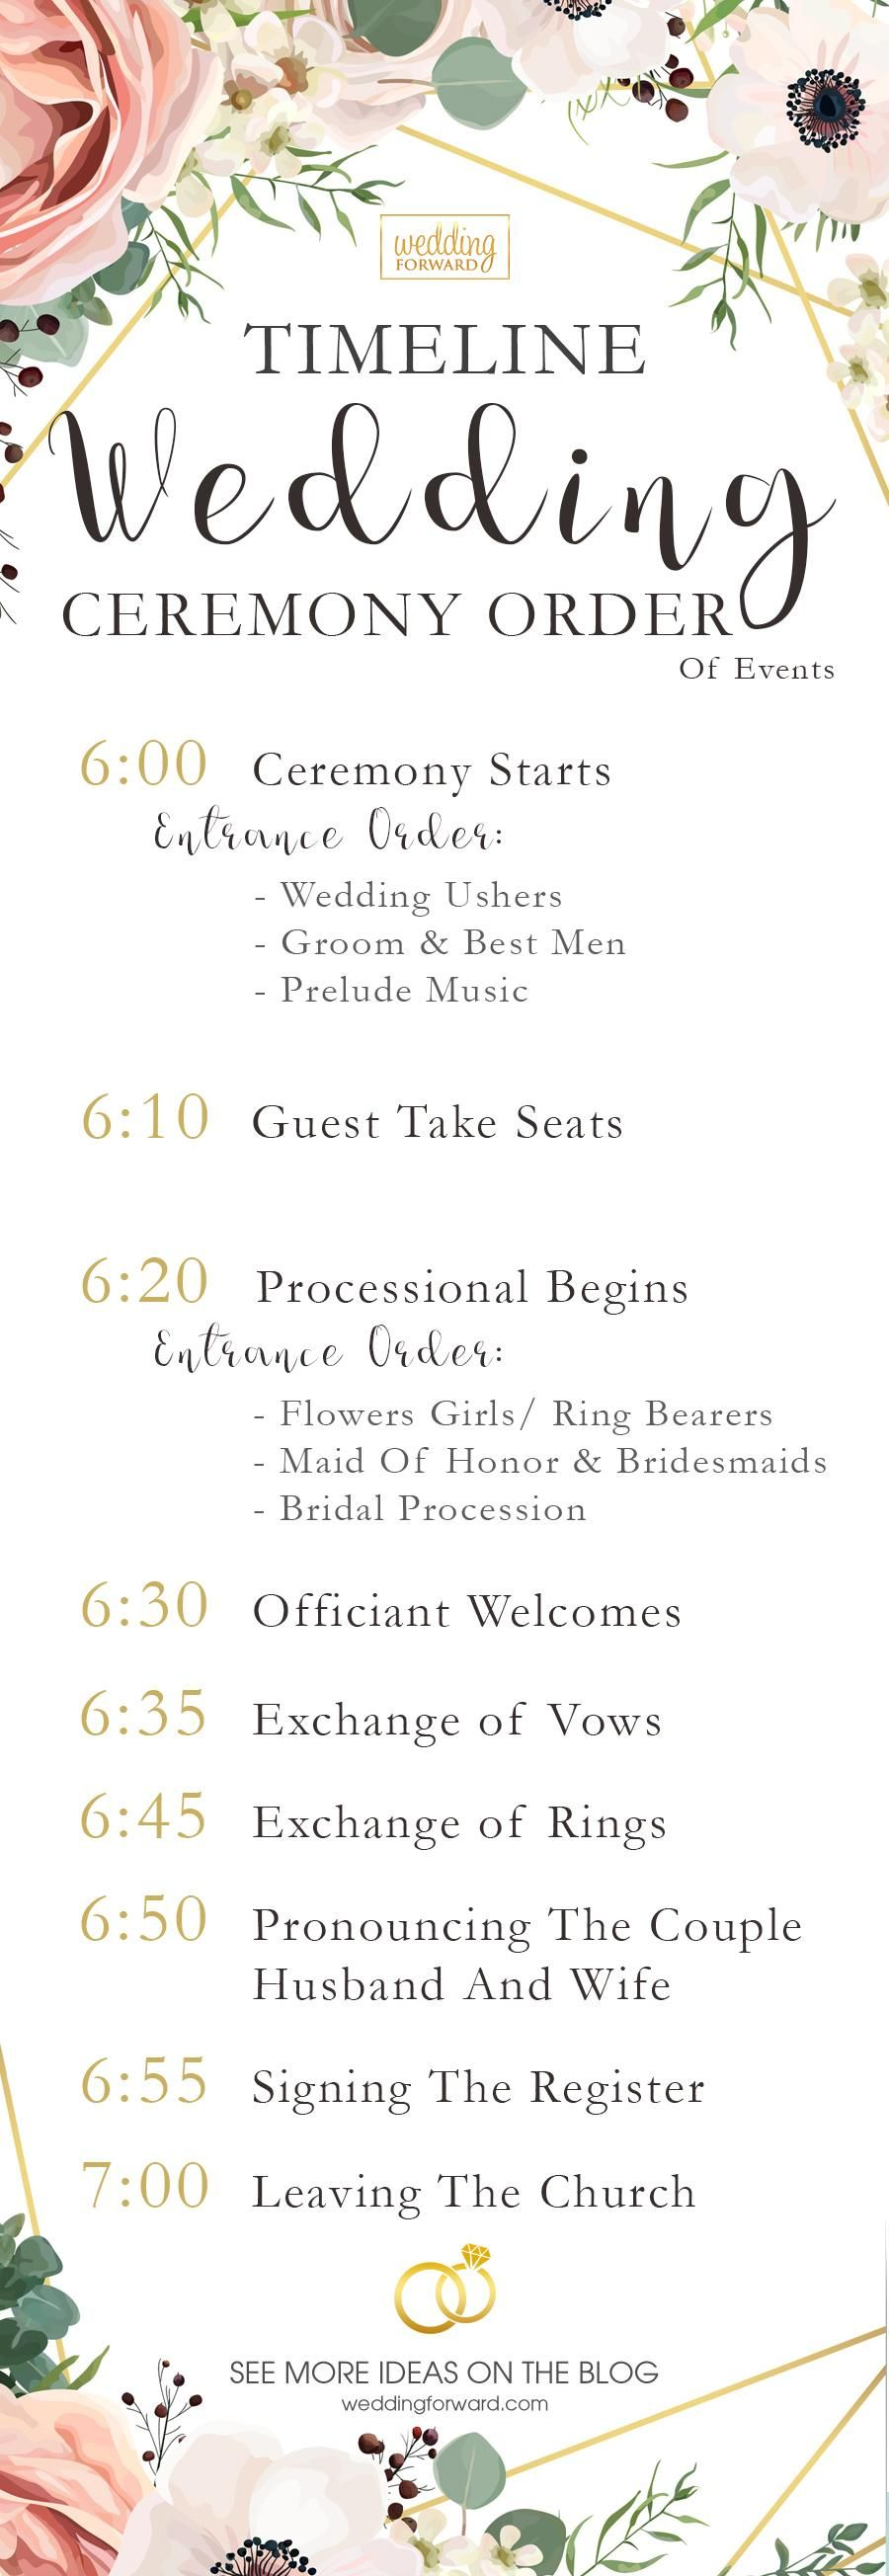 5 Samples Of Your Wedding Ceremony Order Of Events Order Of Wedding Ceremony Wedding Infographic Wedding Order Of Events